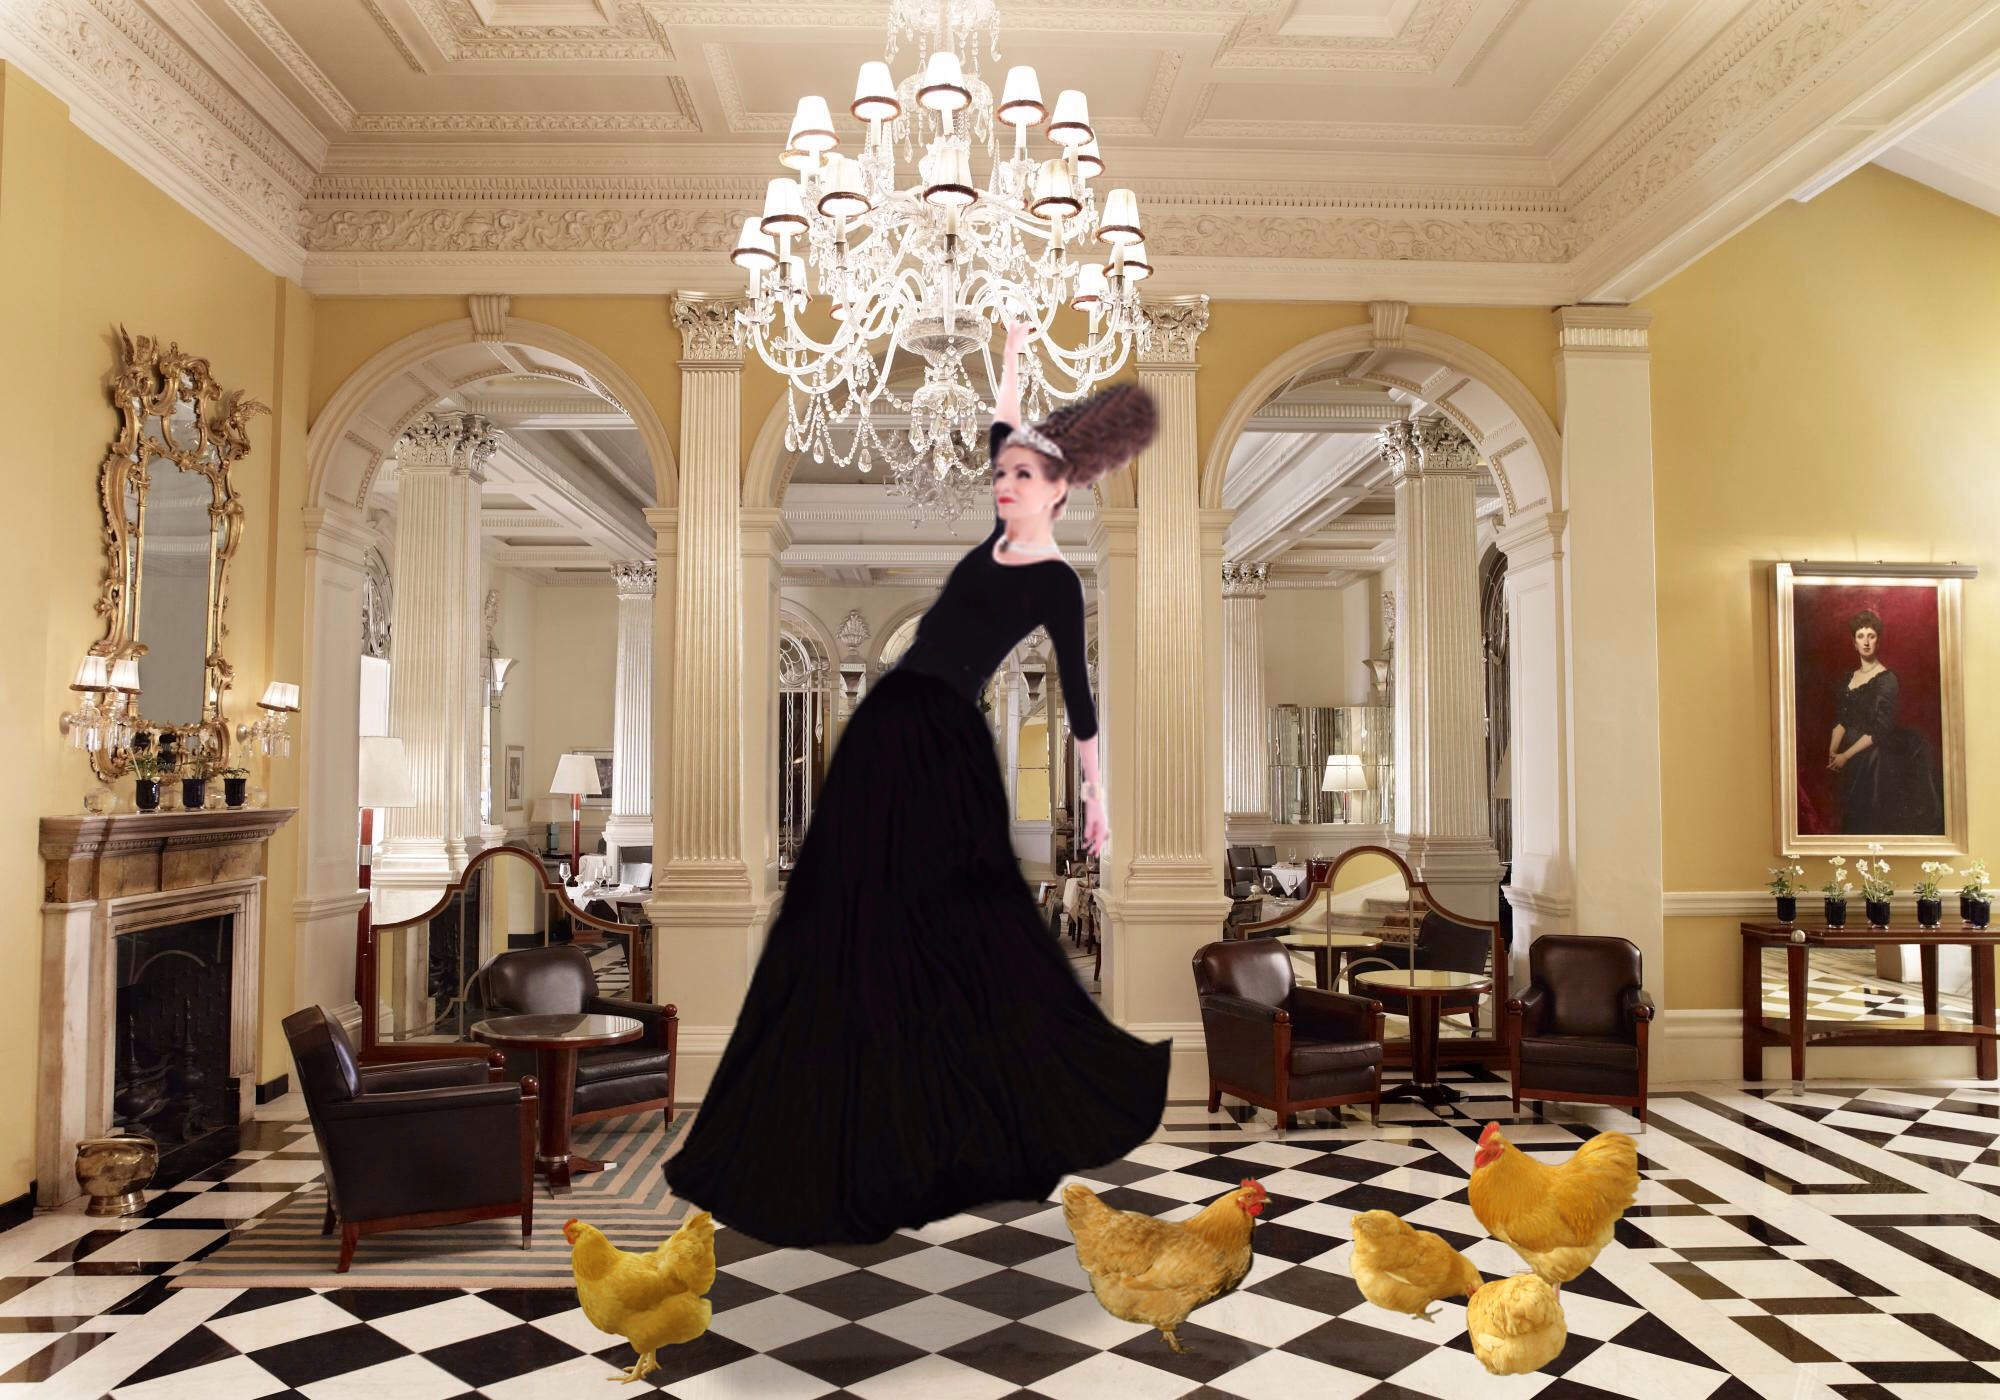 Tyne O'Connell swings from chandelier in Claridges Hotel, Mayfair